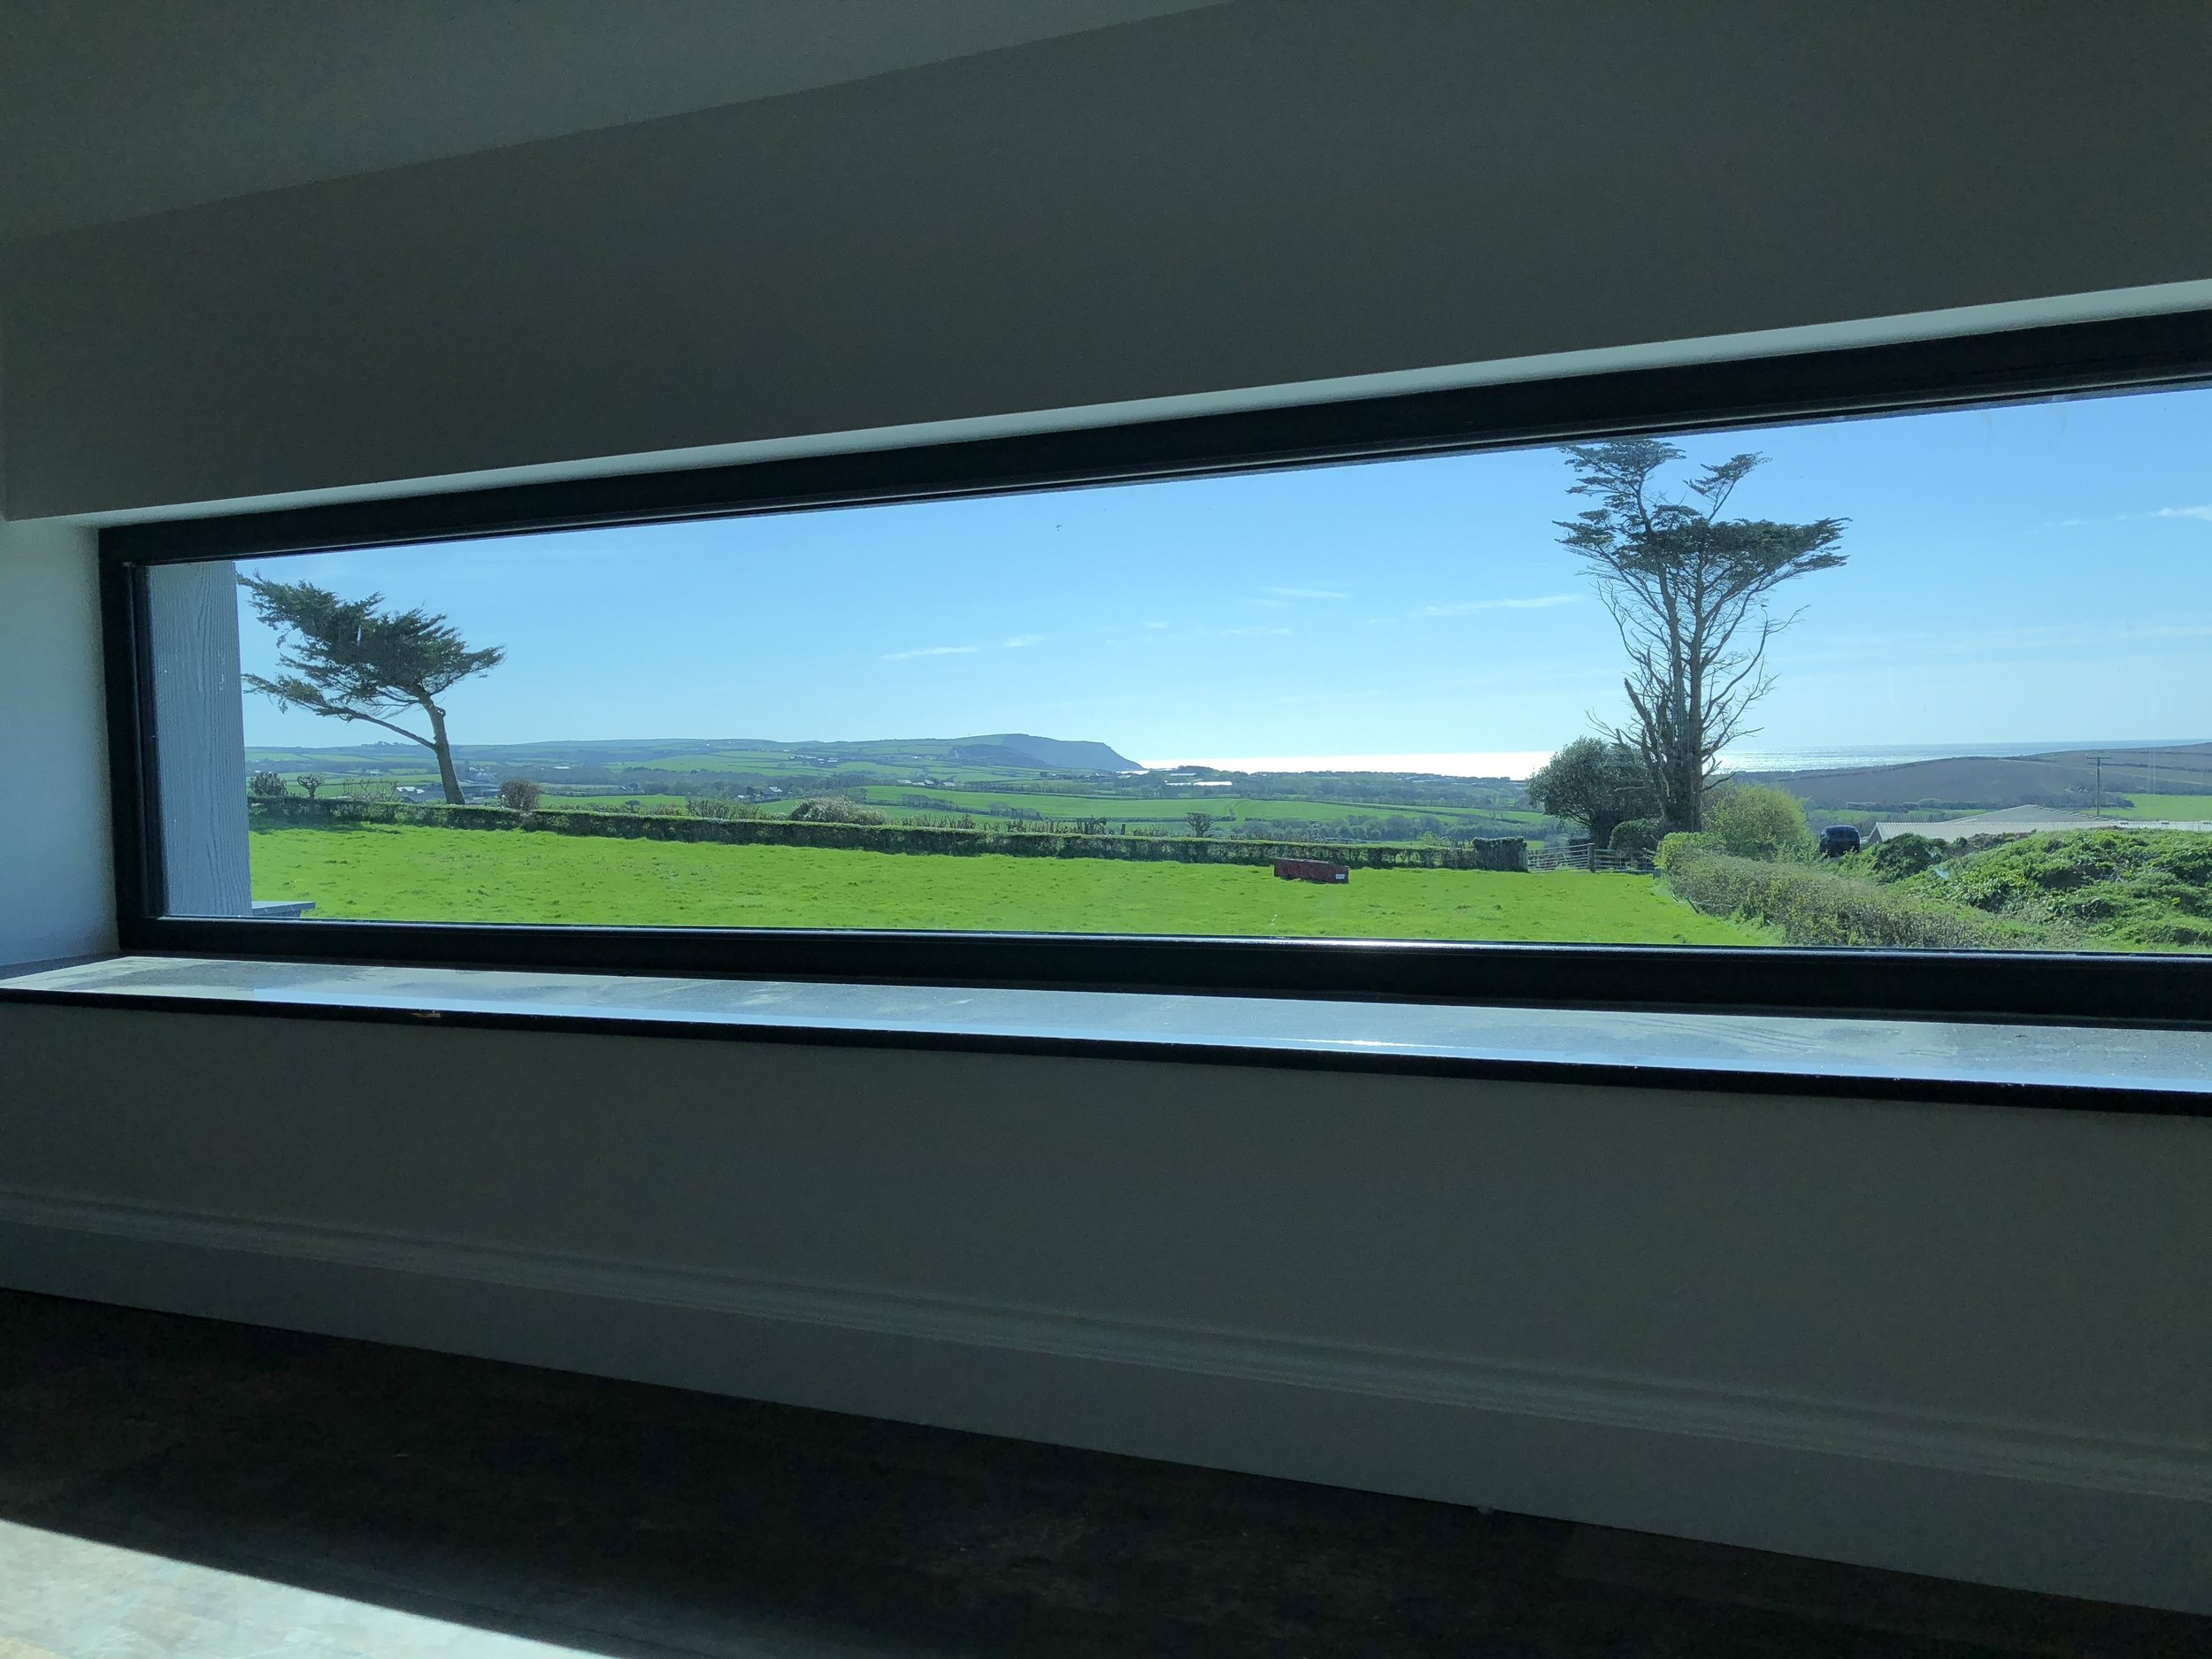 Countryside and sea view from the bathroom